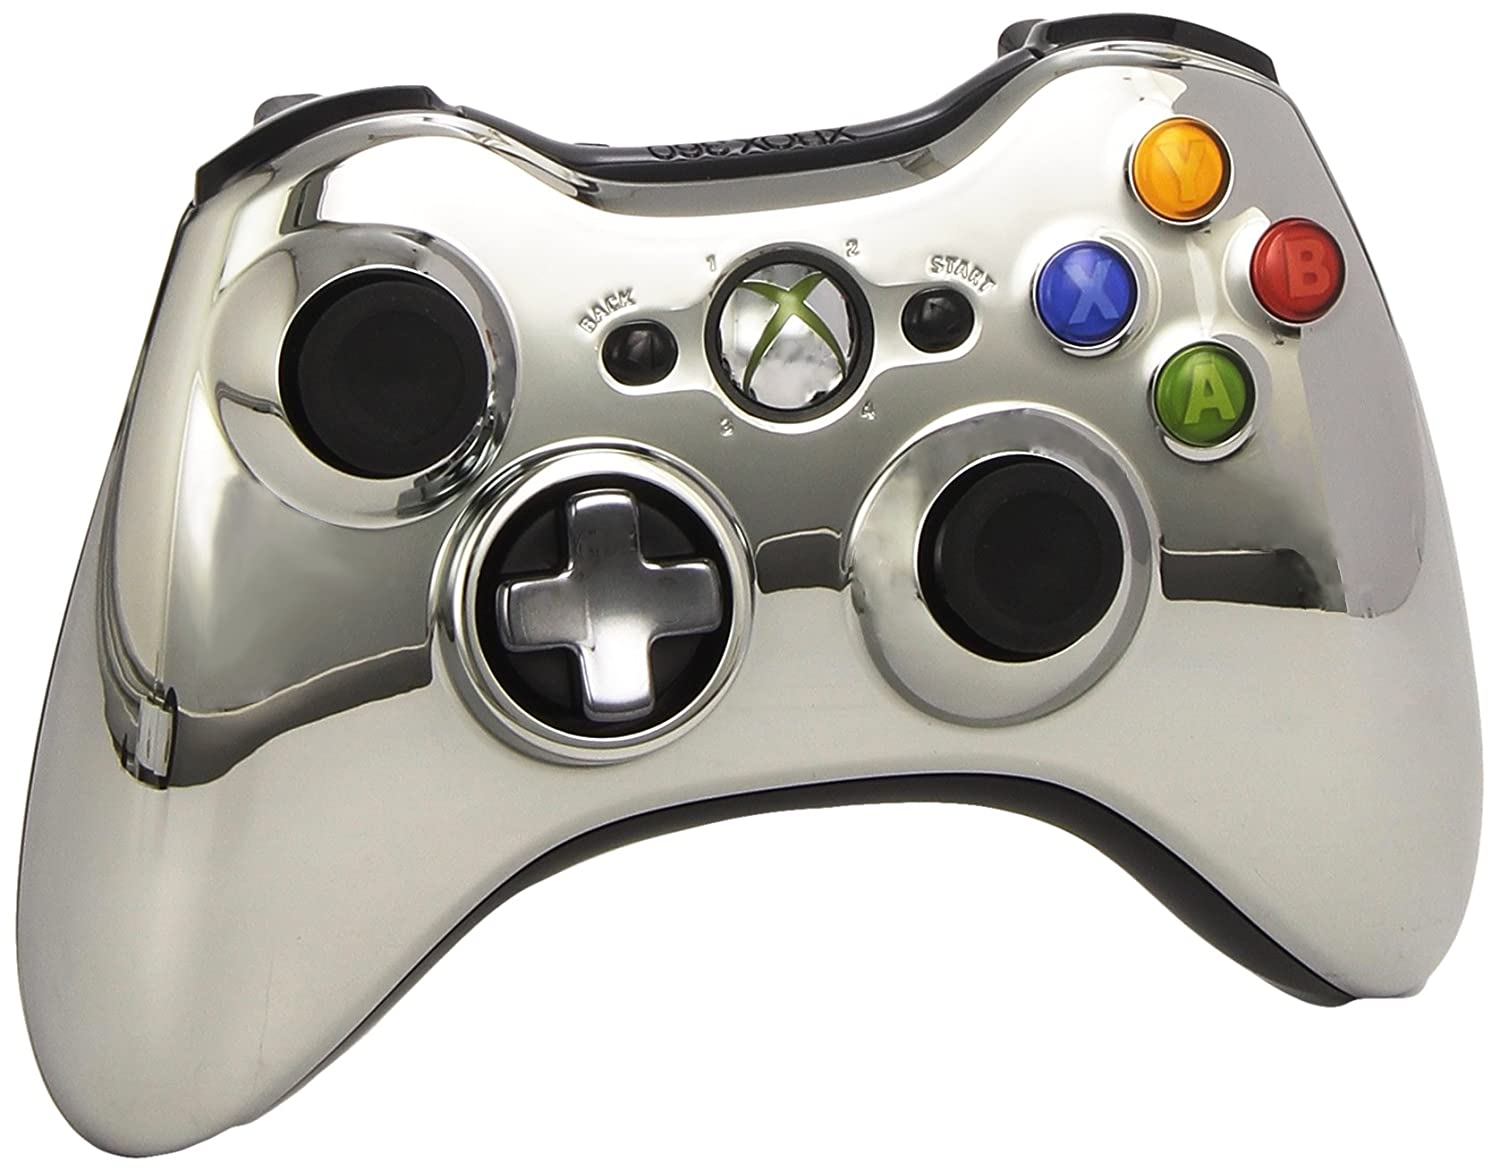 Official Xbox 360 Wireless Silver Chrome Controller - Special price Max 67% OFF